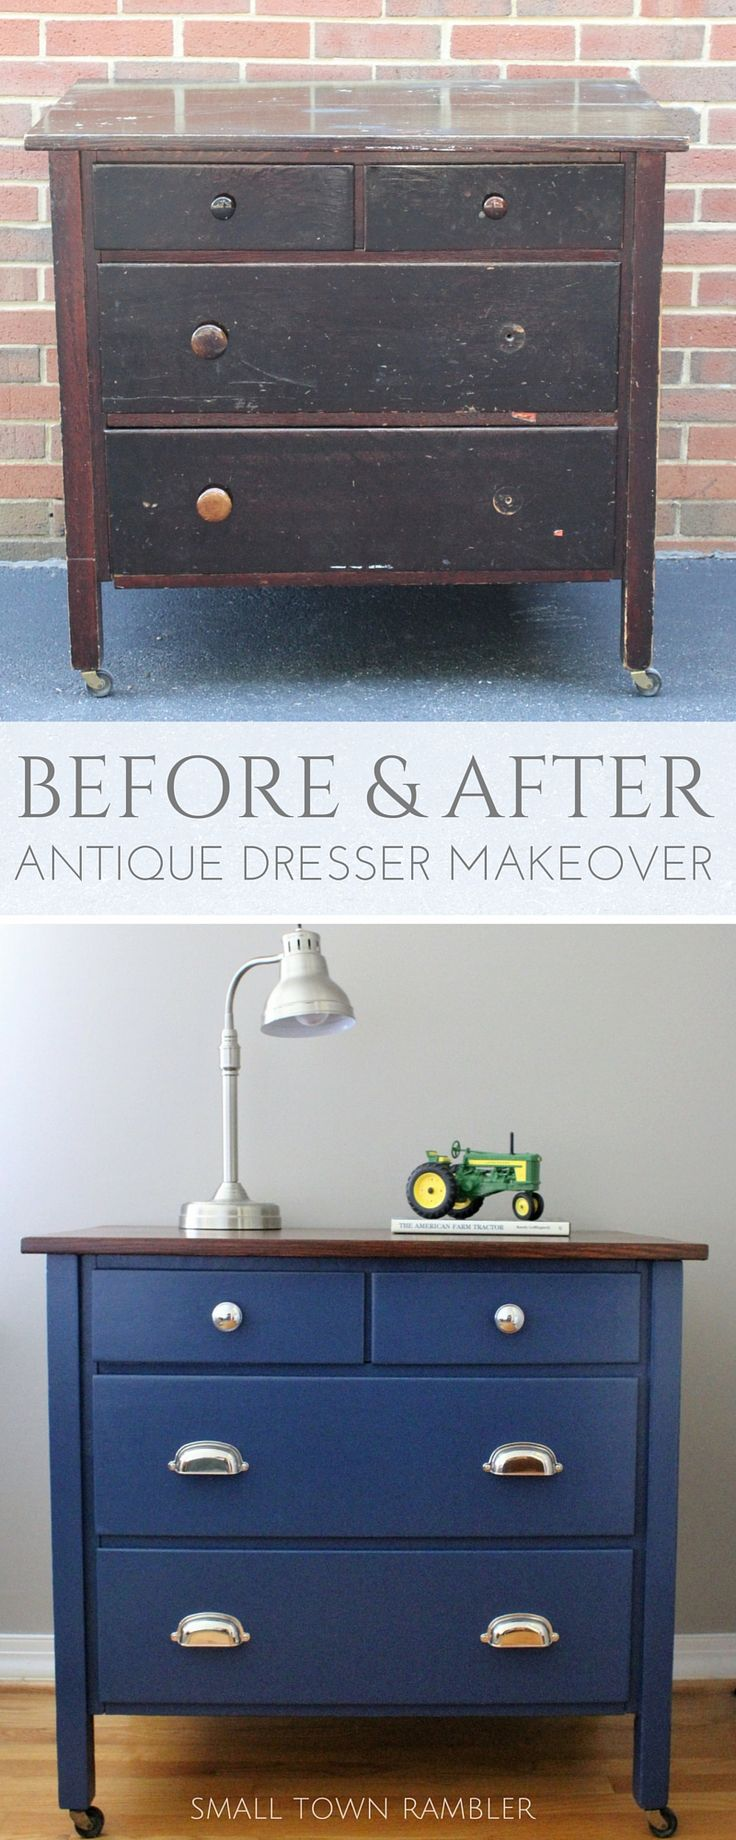 Antique Dresser Makeover  Painted Navy Blue With Wood Stained Top. Color:  Champion Cobalt